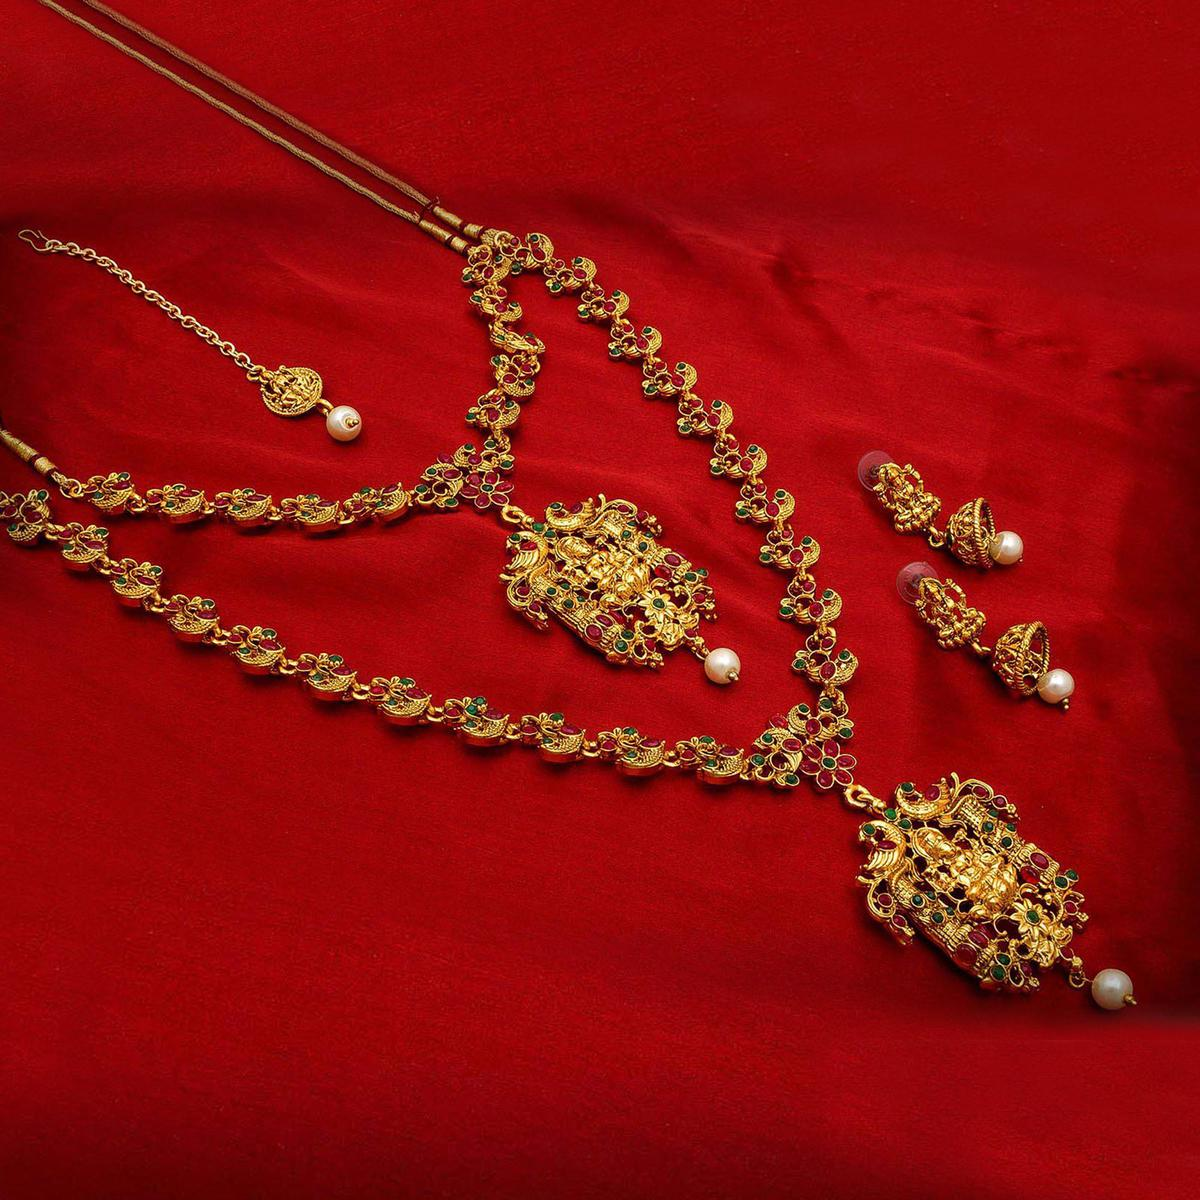 Preferable Golden Colored Mix Metal & Stone Work Double Necklace Set